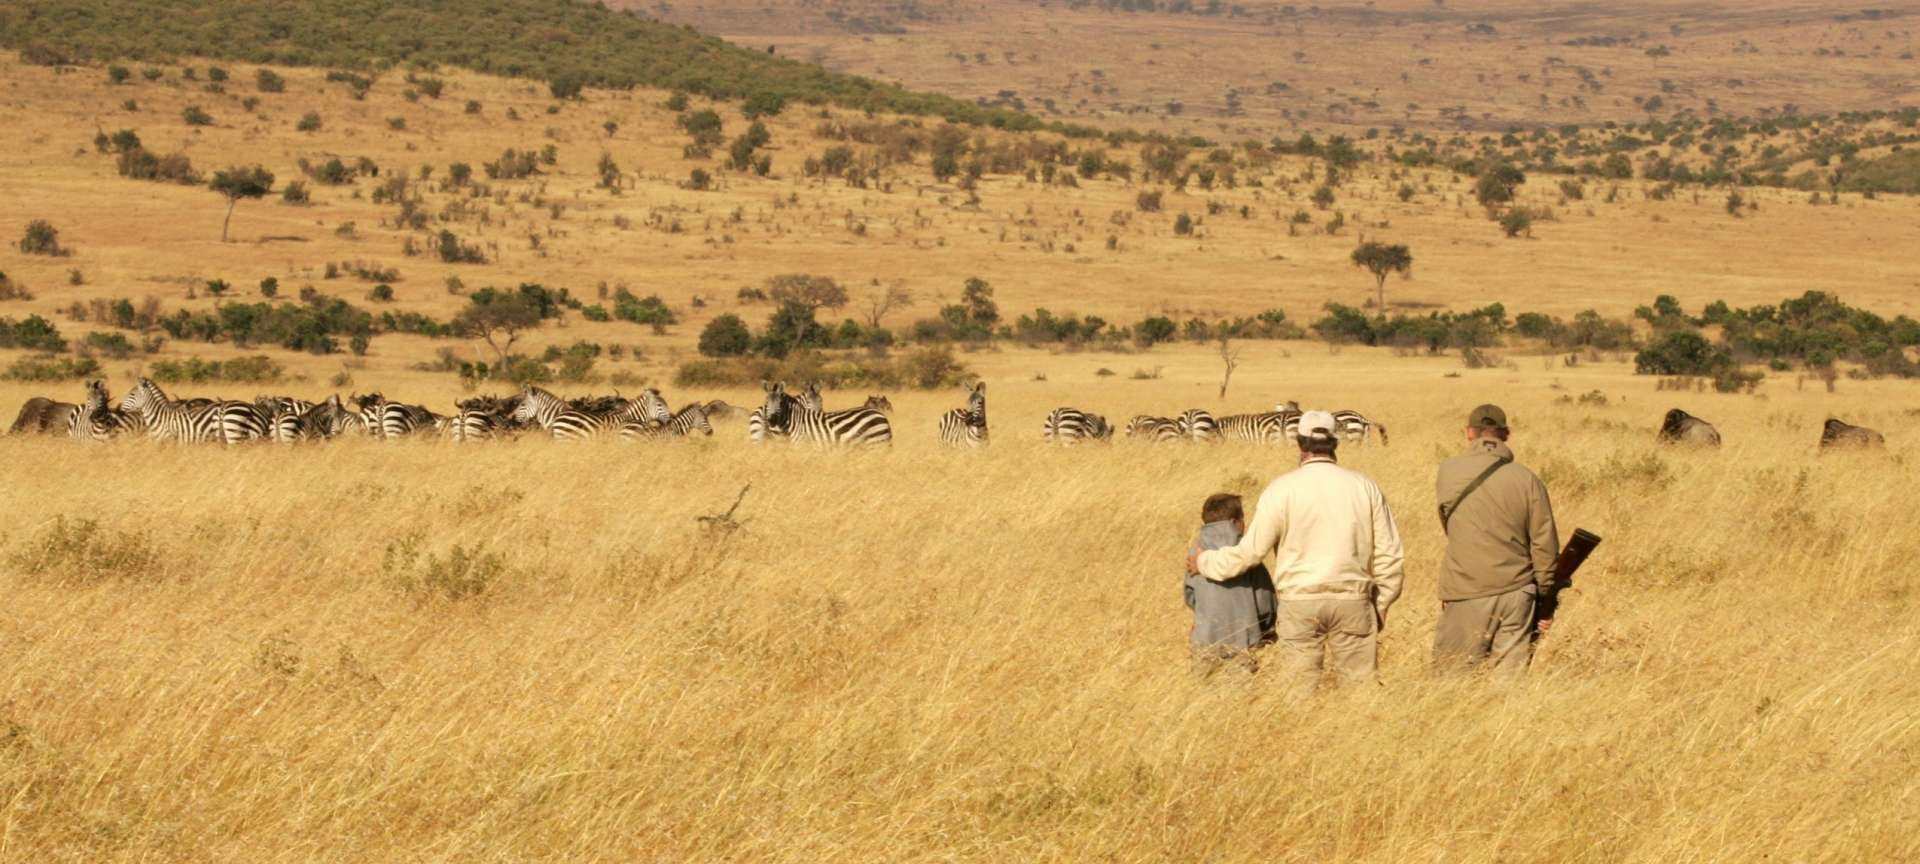 Guided safaris are ideal for families